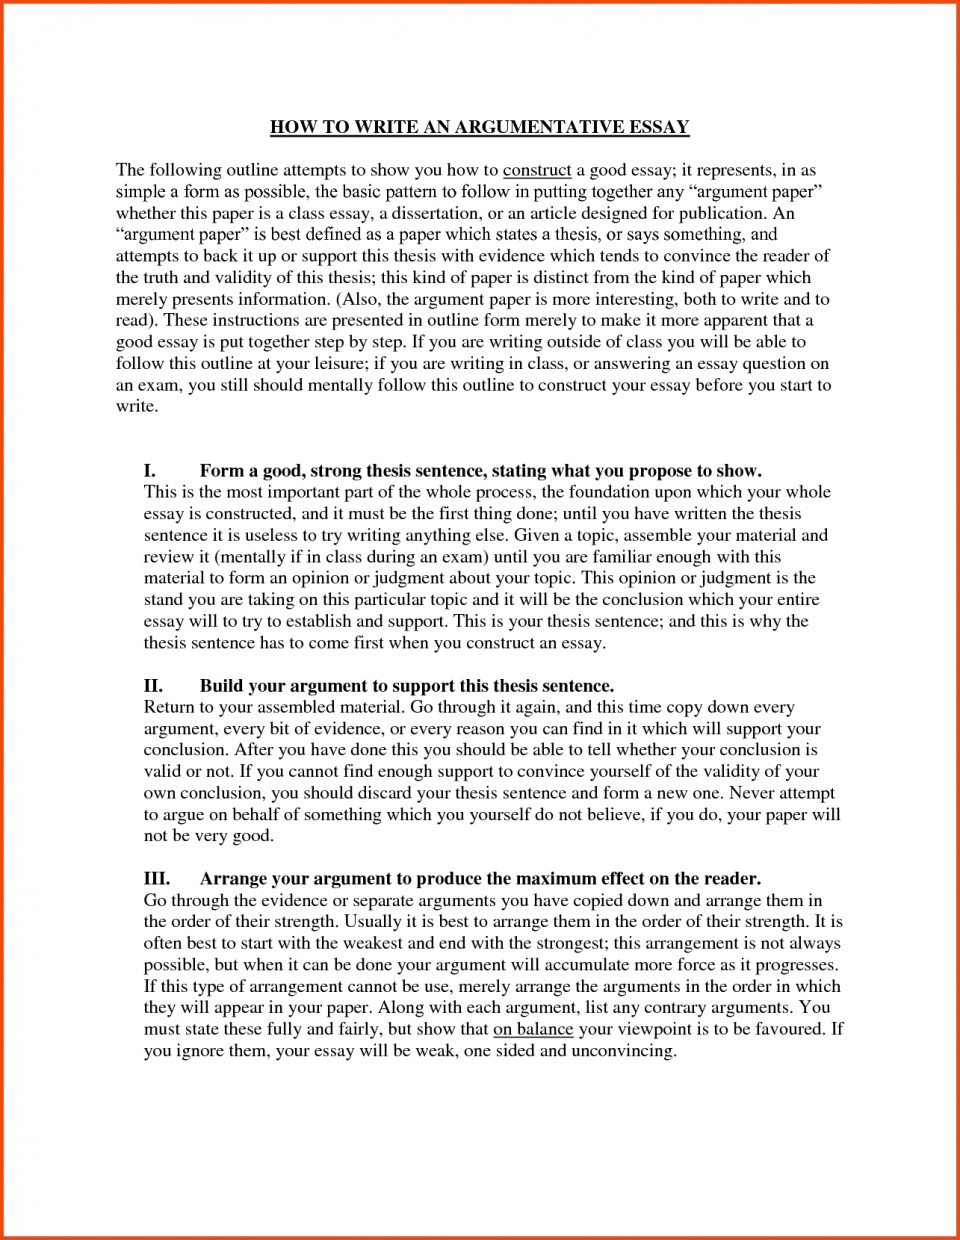 005 Essay Example How To Start An Brilliant Ideas Of Good Ways About Yourself Dissertation Nice Amazing With A Definition Rhetorical Question Your Life 960